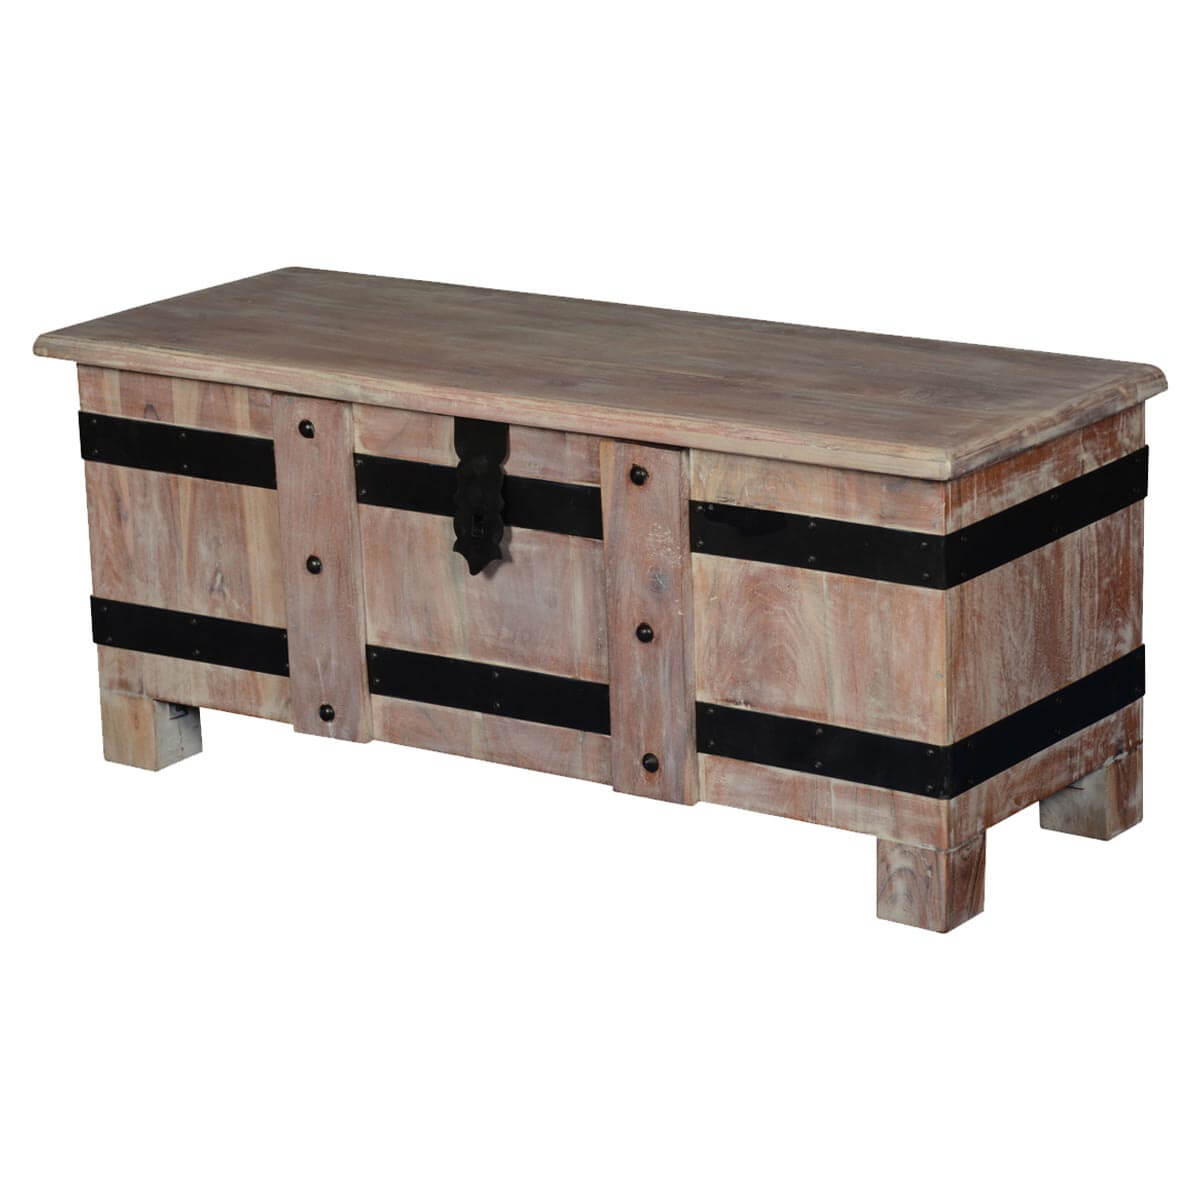 Gothic Mango Wood Standing Coffee Table Chest